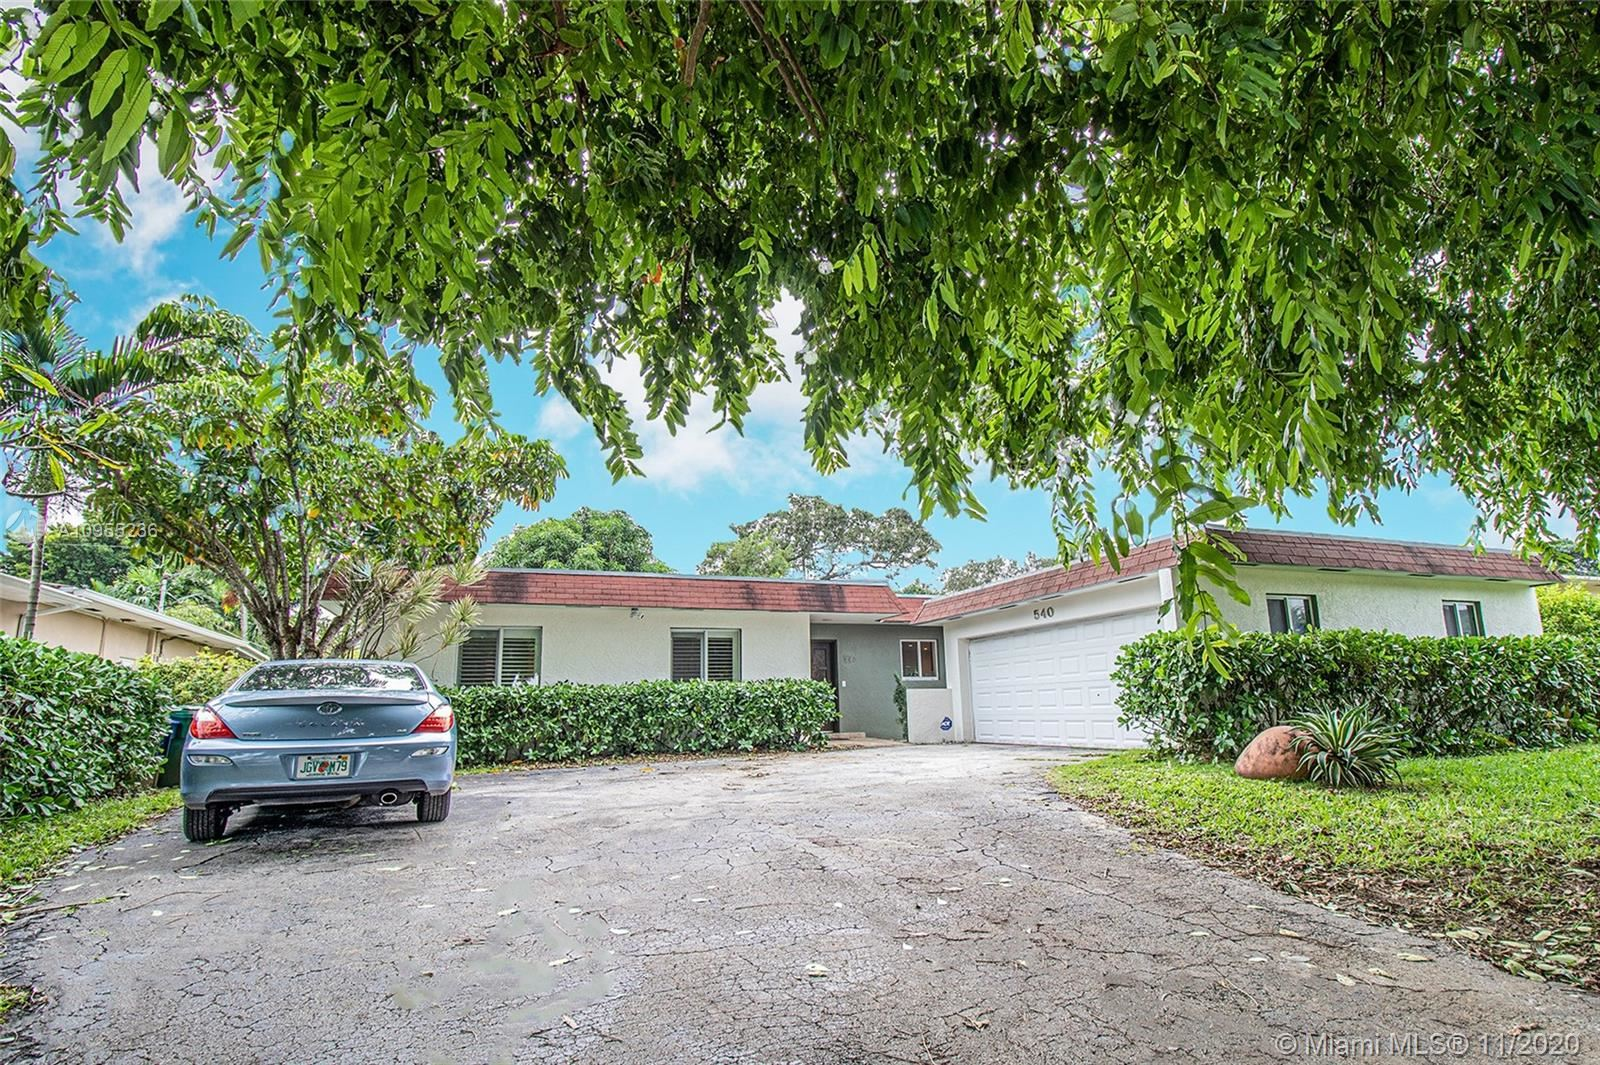 540 NE 108th St, Miami Shores, FL 33161 - #: A10955236